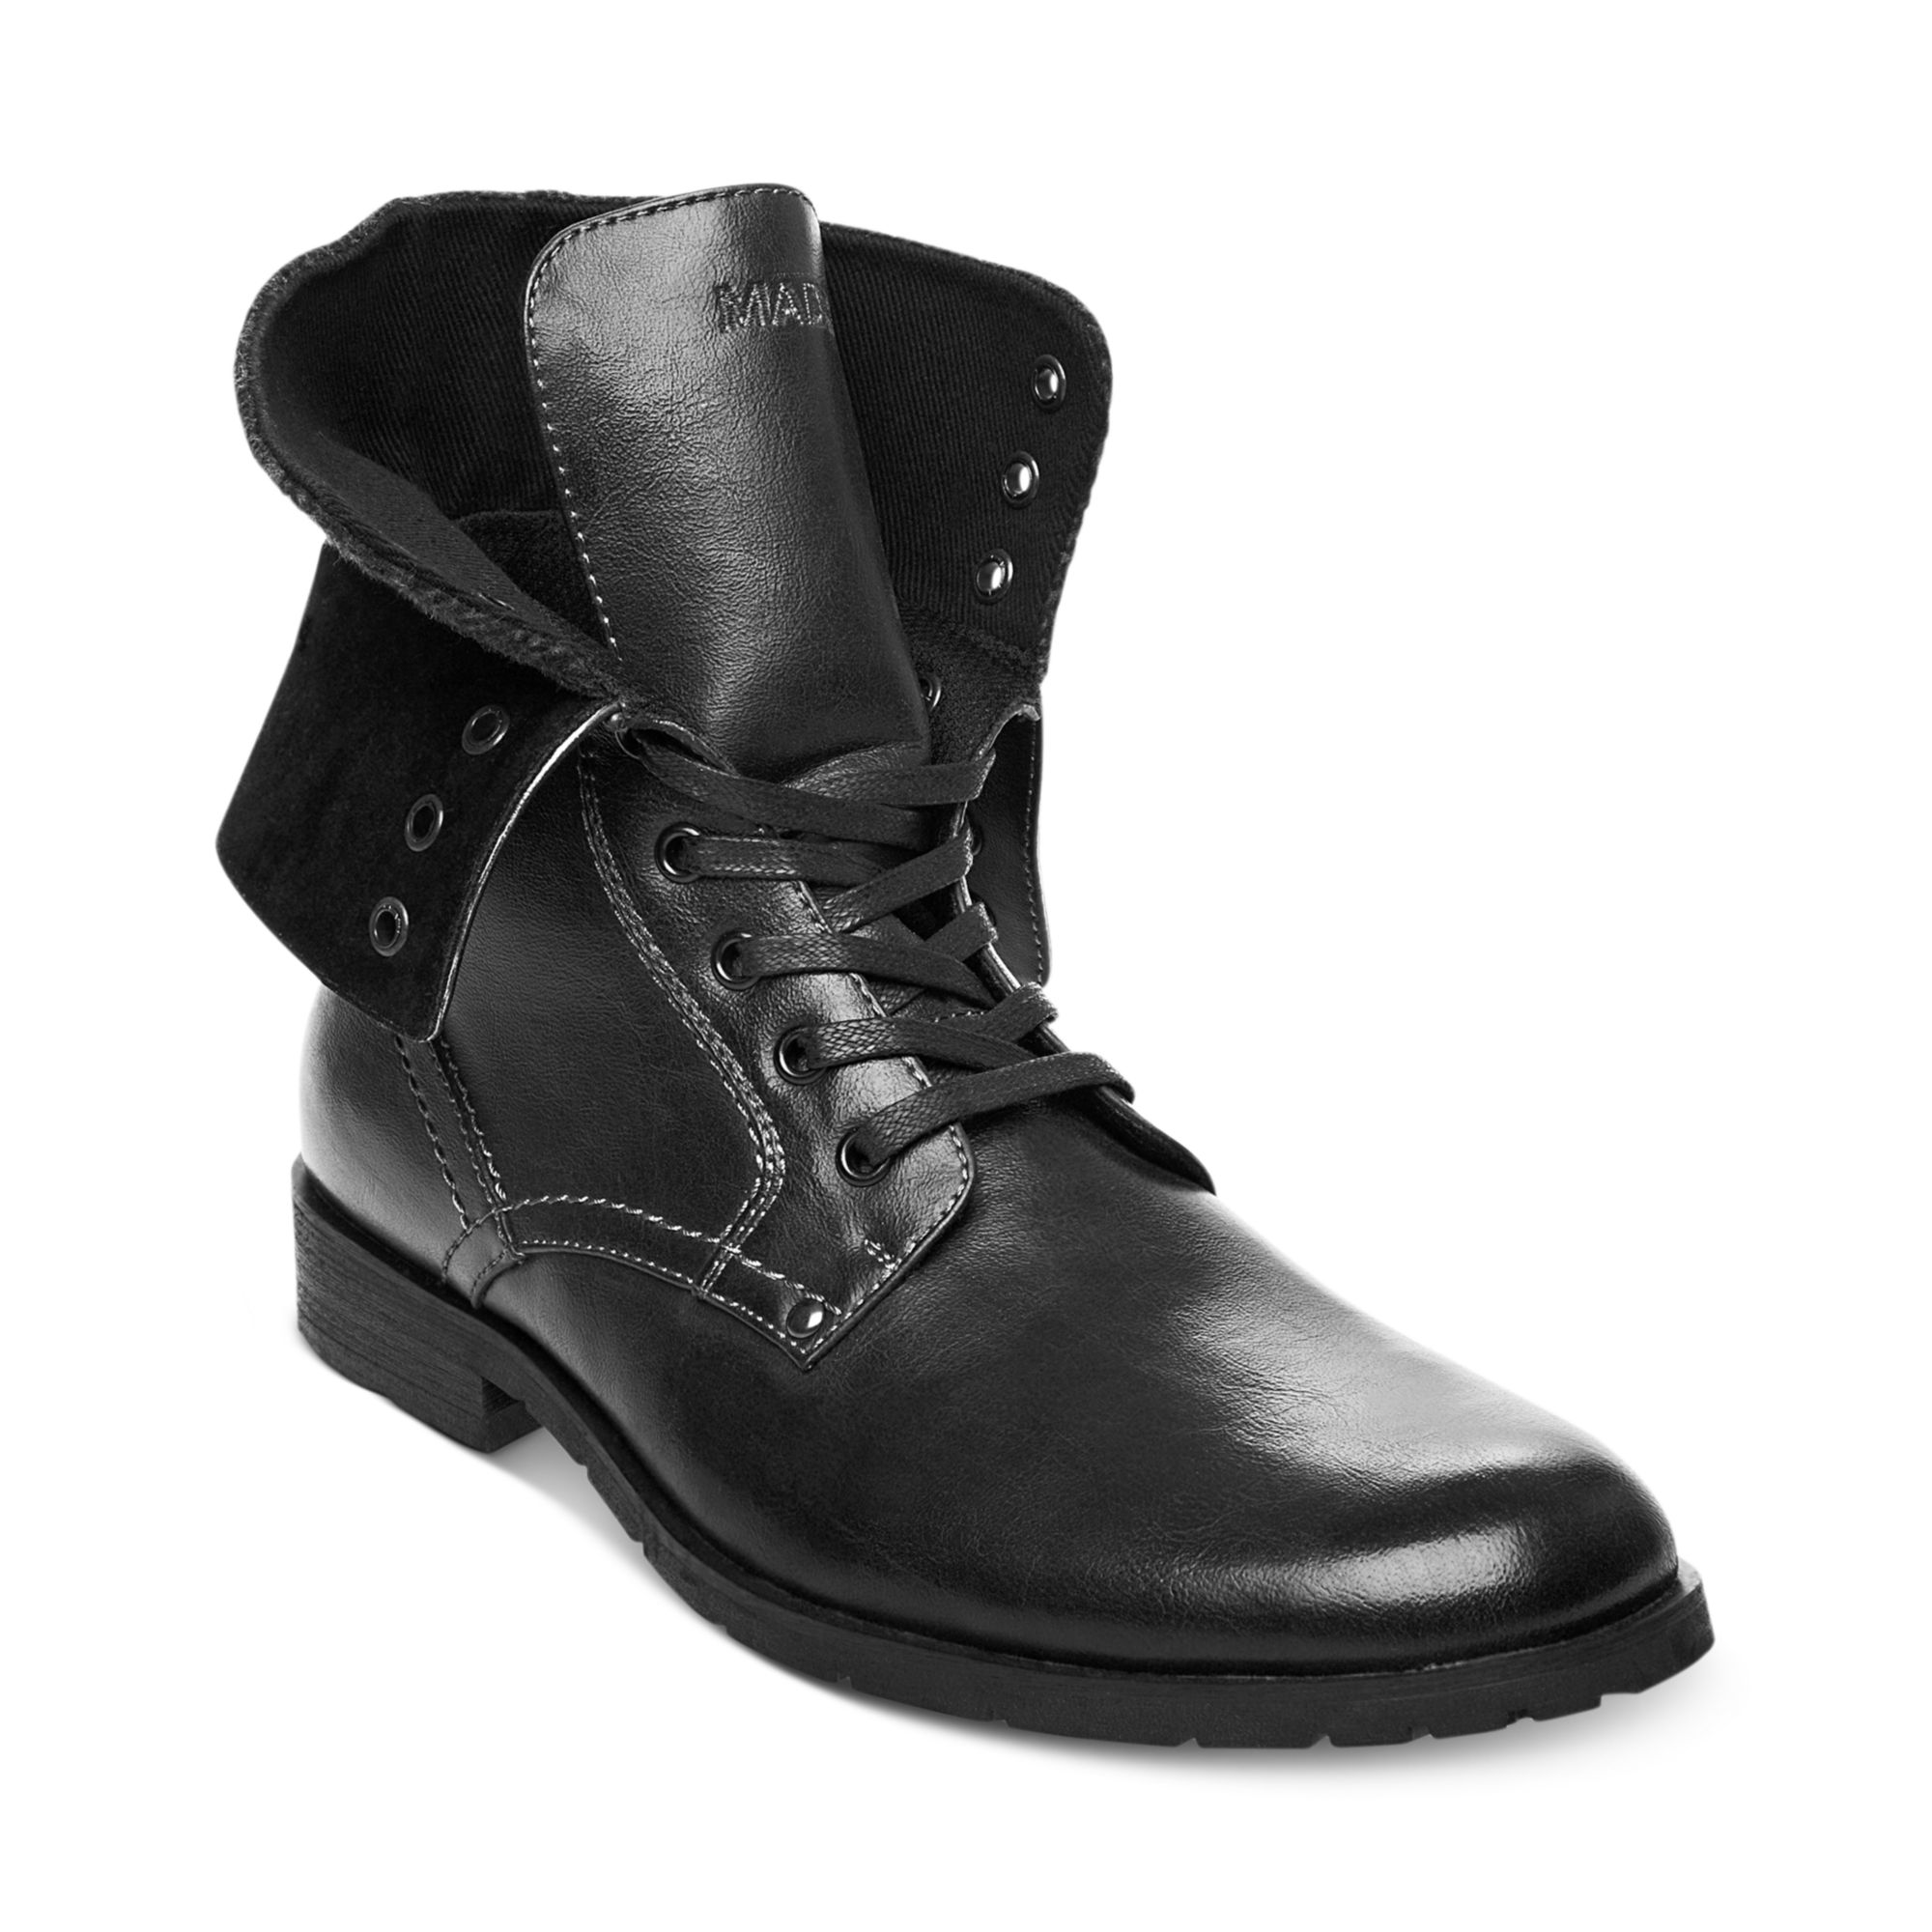 buddhist single men in madden ★ steve madden aarowe slip-on (men) @ deals price mens dress shoes, free shipping and returns on [steve madden aarowe slip-on (men)] find this season s must-have styles from top brands order online today.